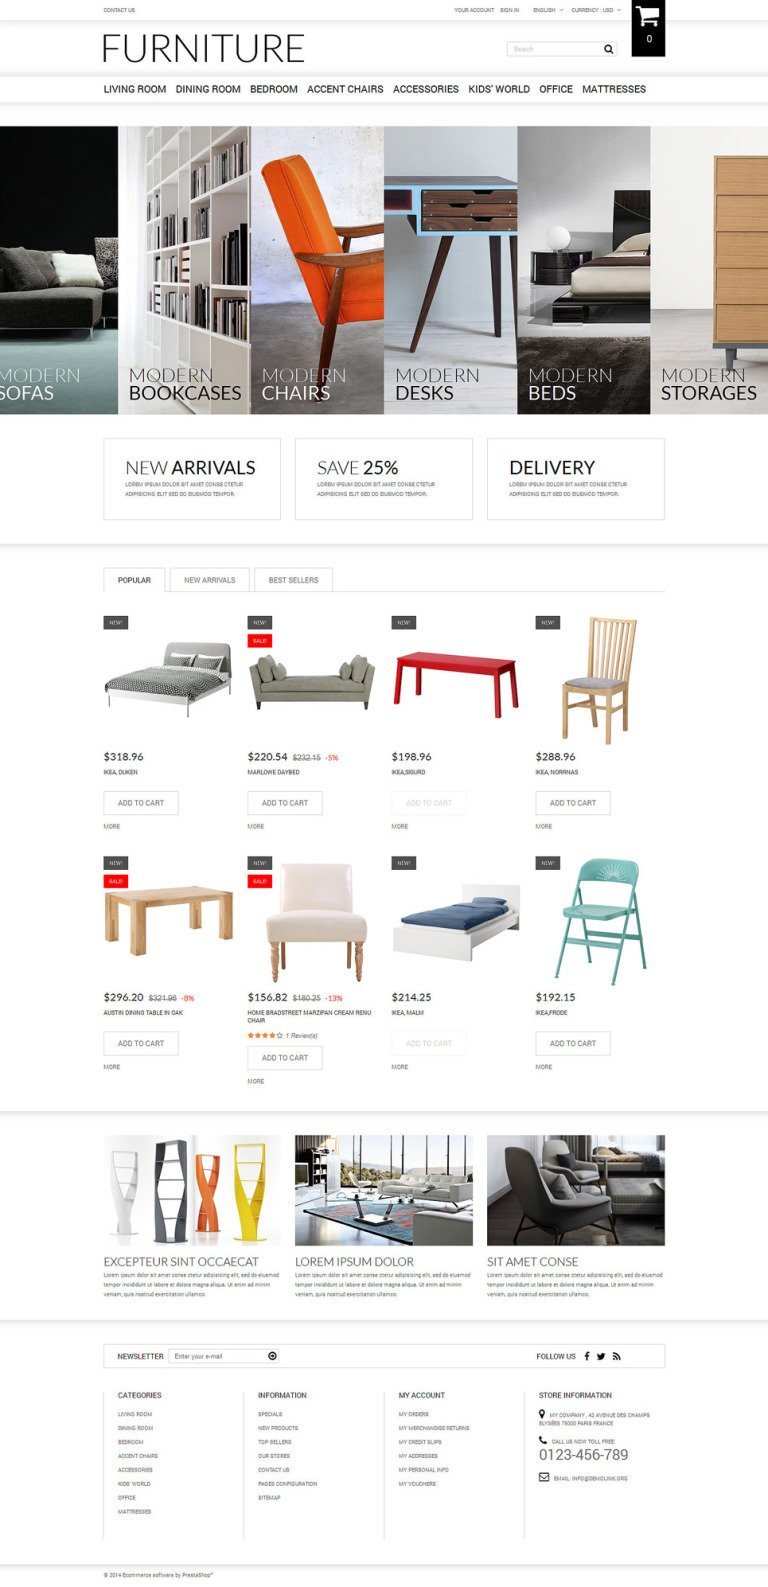 Selling Furniture Online PrestaShop Theme New Screenshots BIG